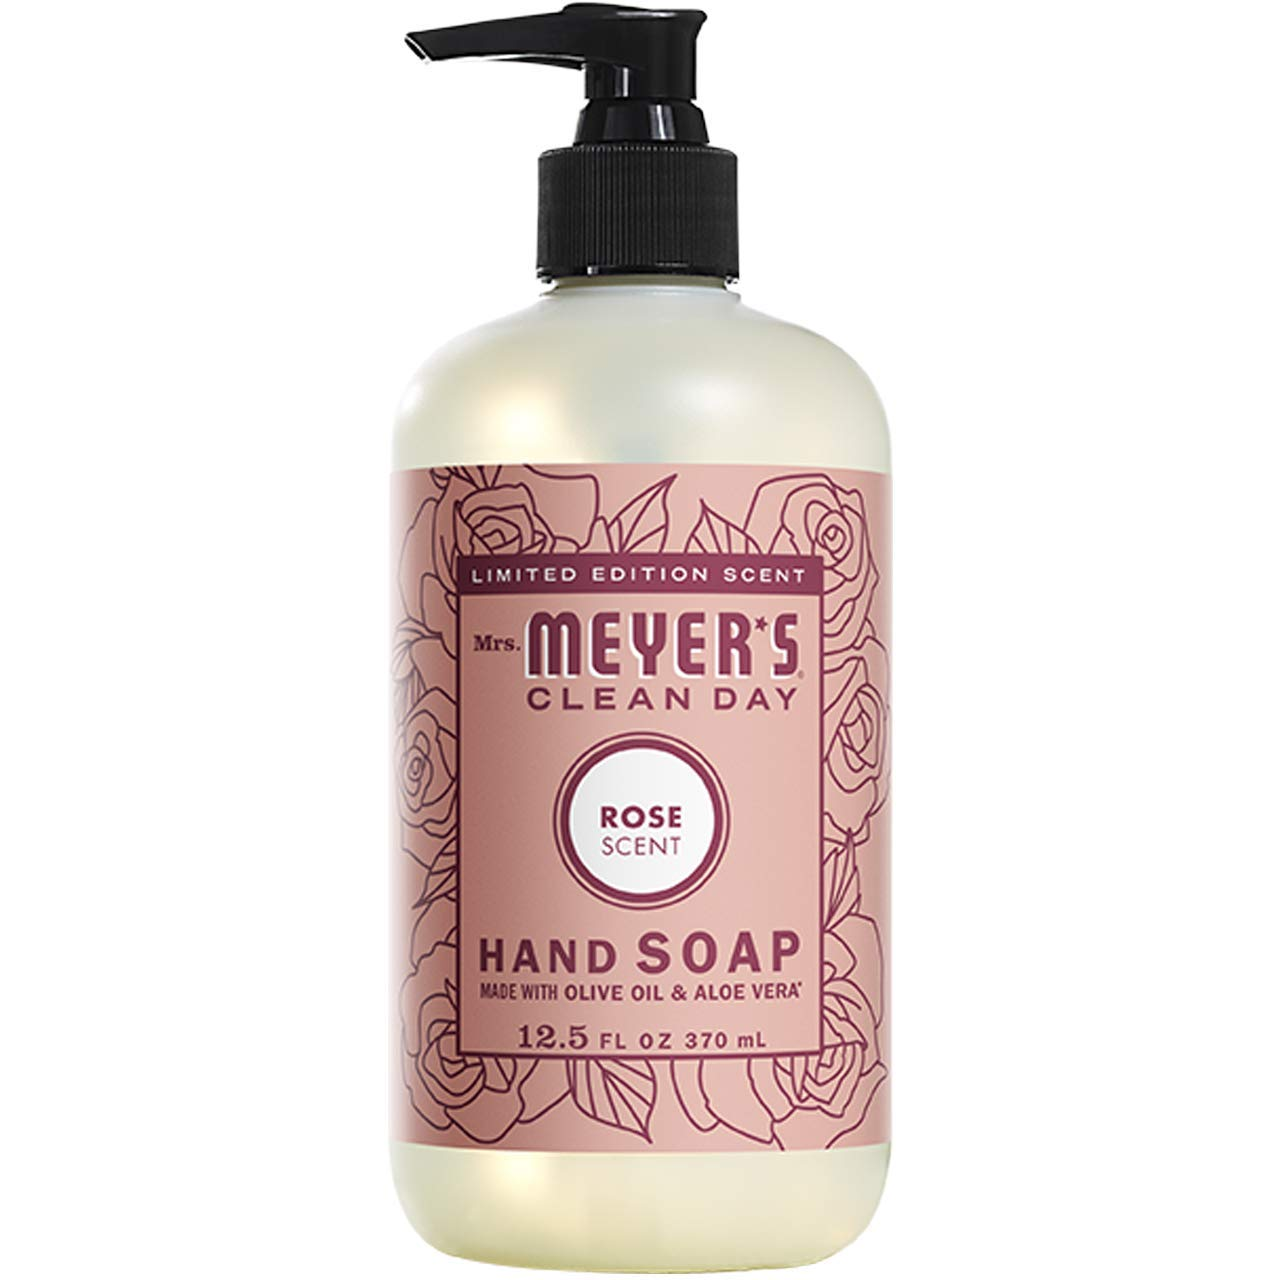 Mrs. Meyer's Clean Day Liquid Hand Soap,Rose 12.5 Oz, (Pack - 6)